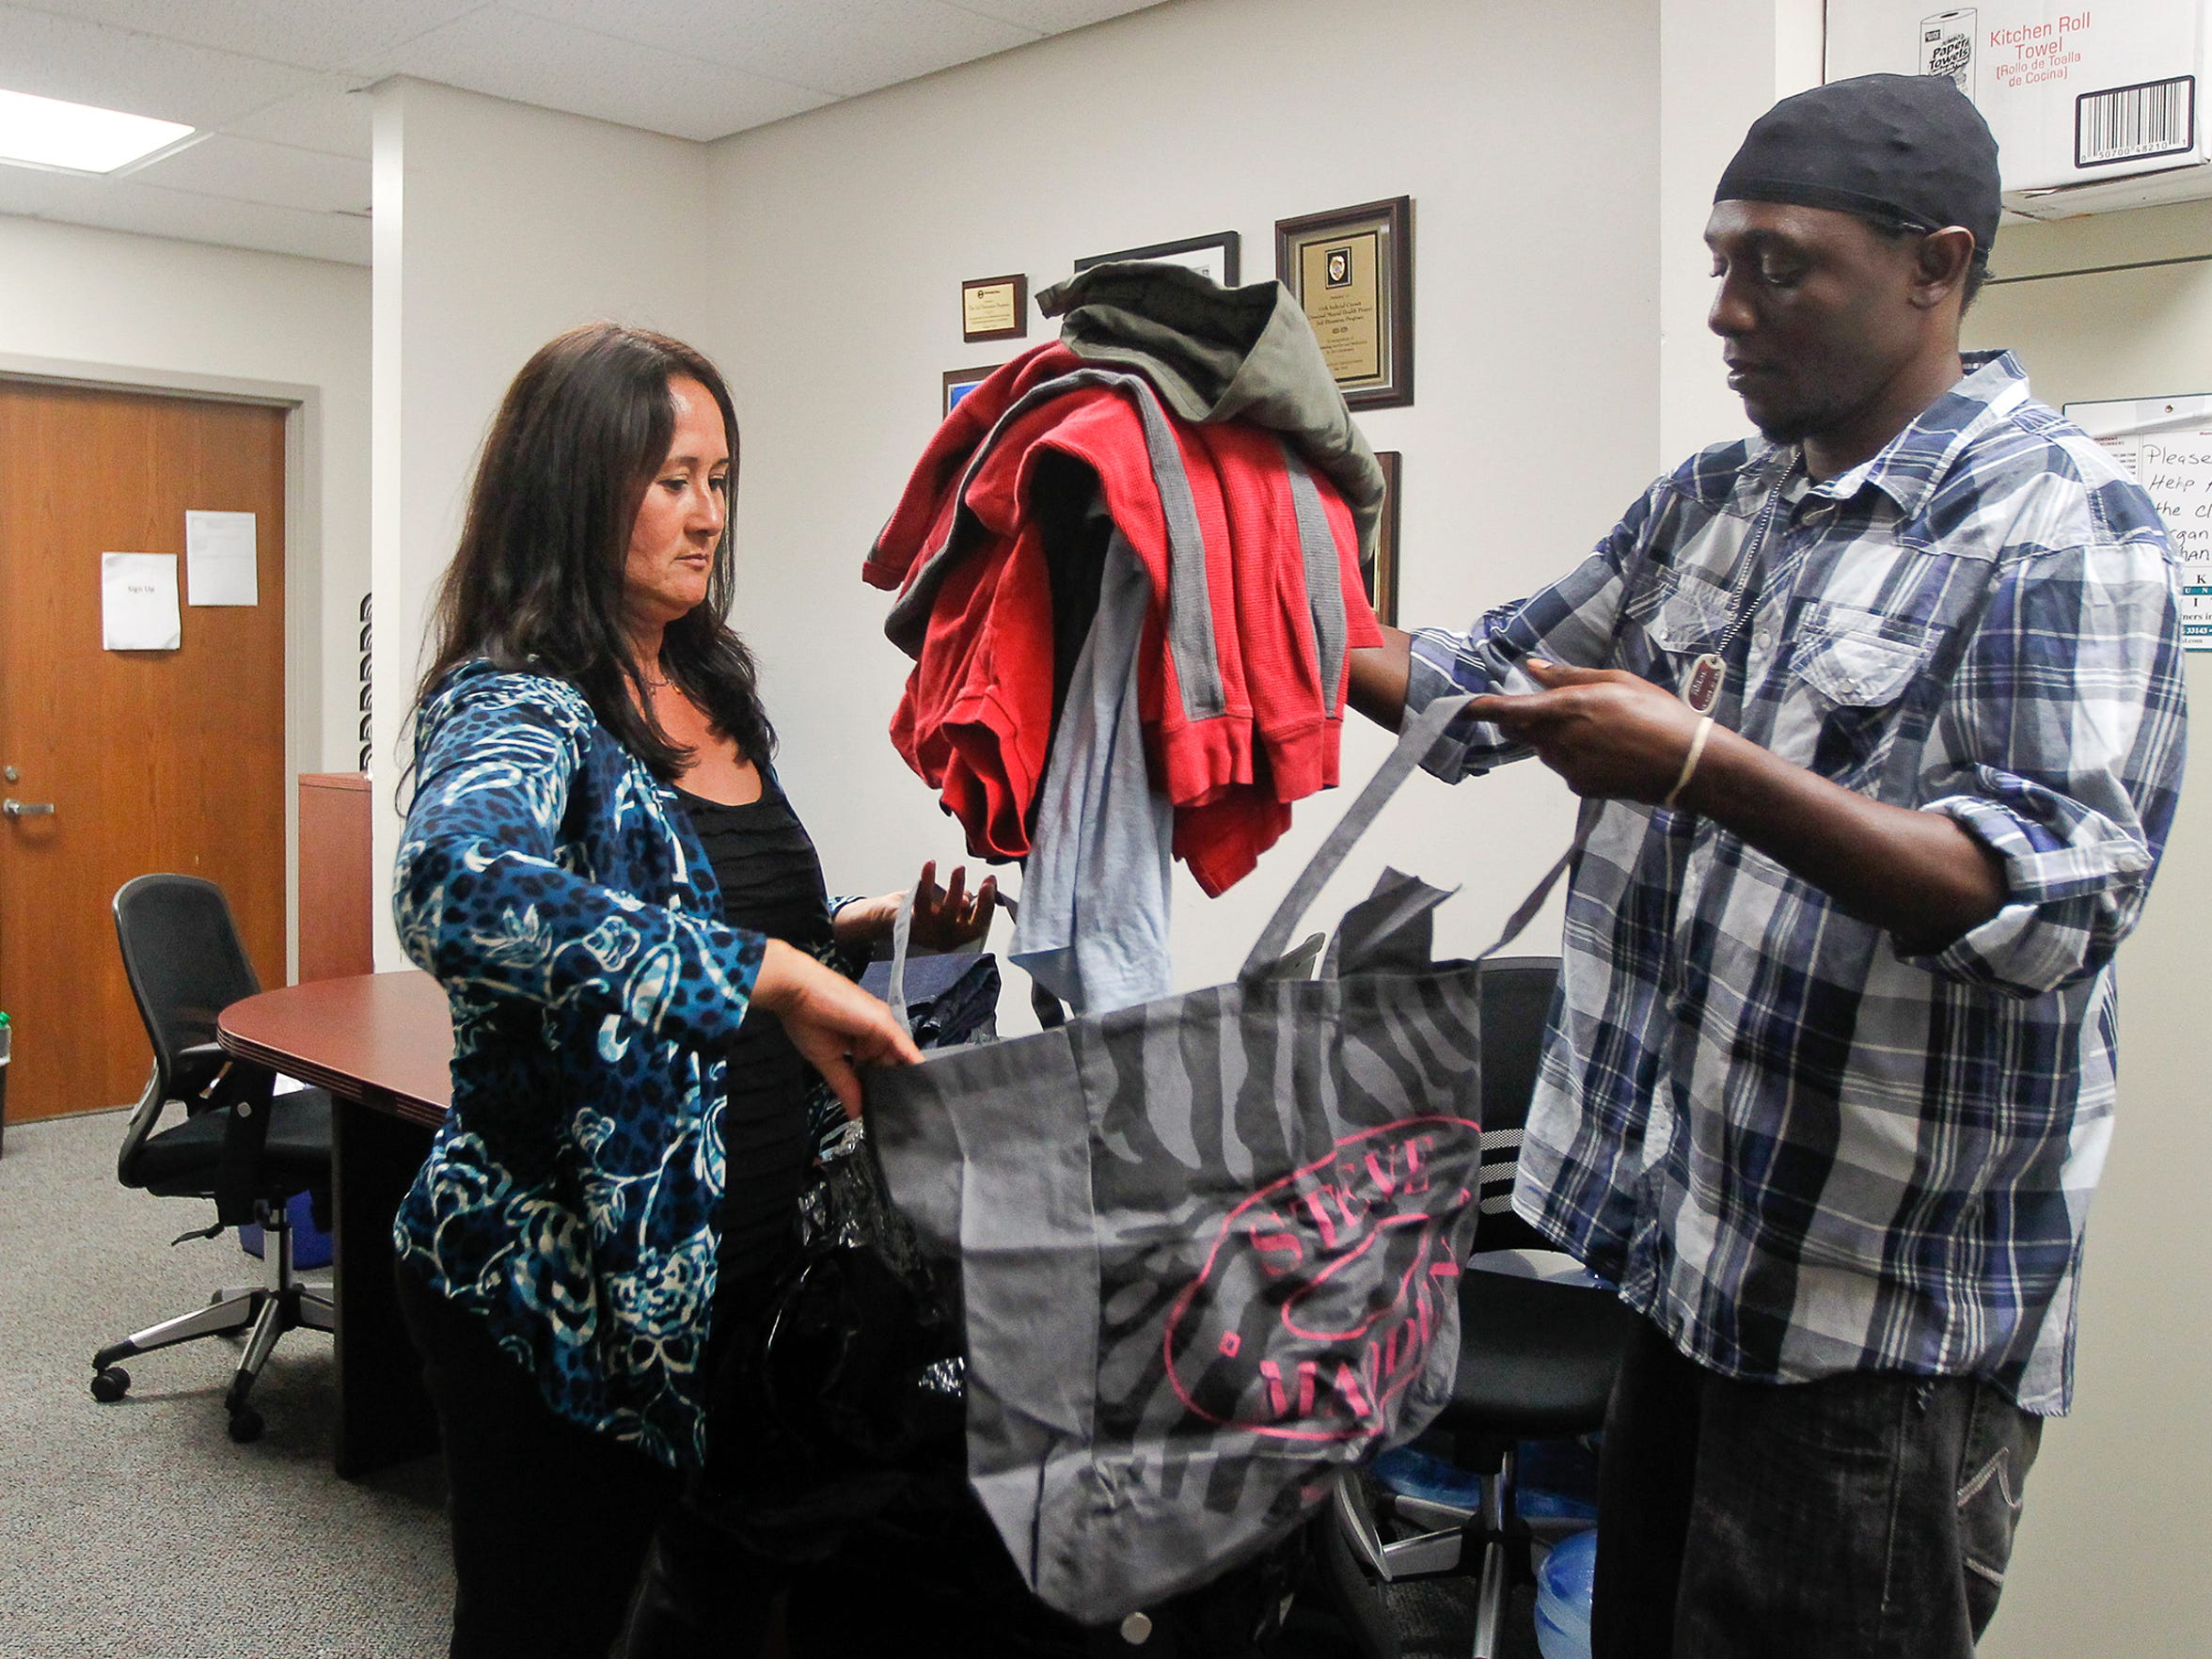 Julie Reed, a client specialist in the Miami-Dade County Jail Diversion Program, helps Max Joseph, a client in the program, choose donated clothes.